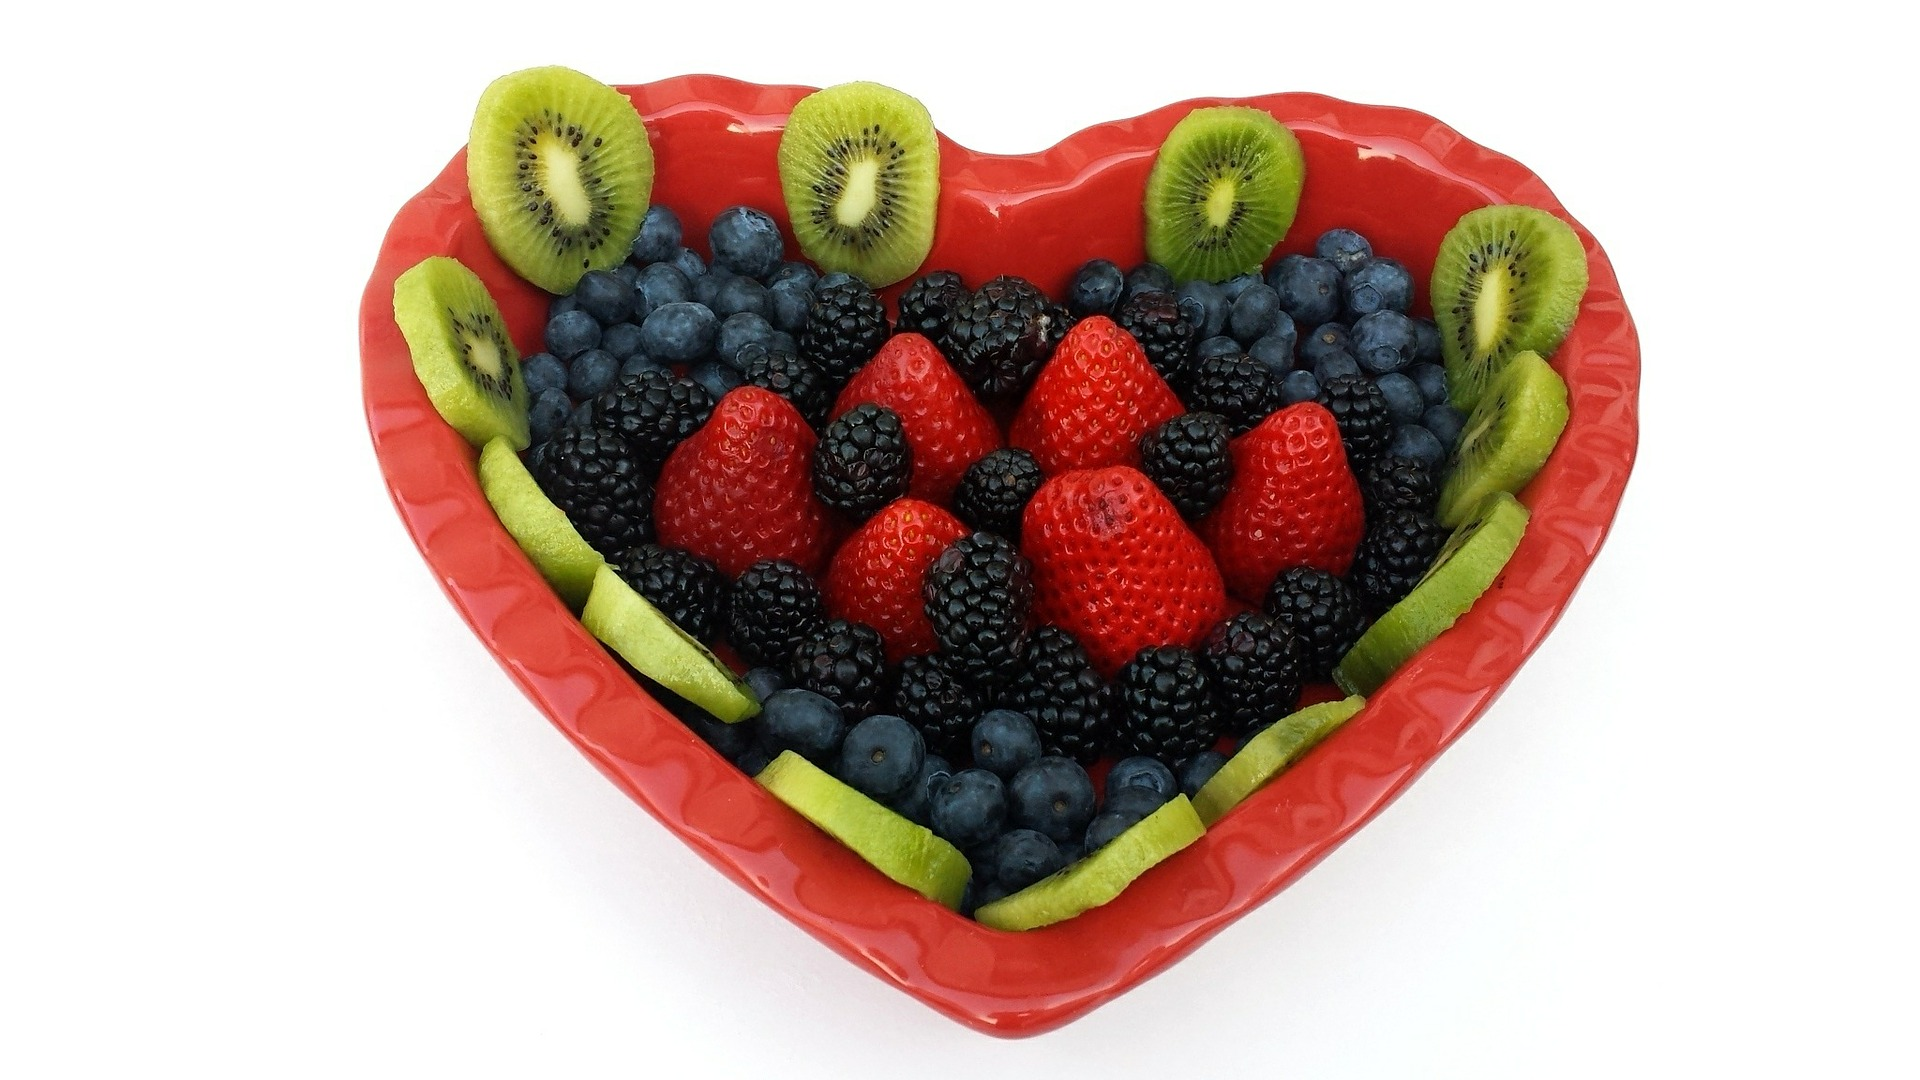 heart shapped healthy fruits